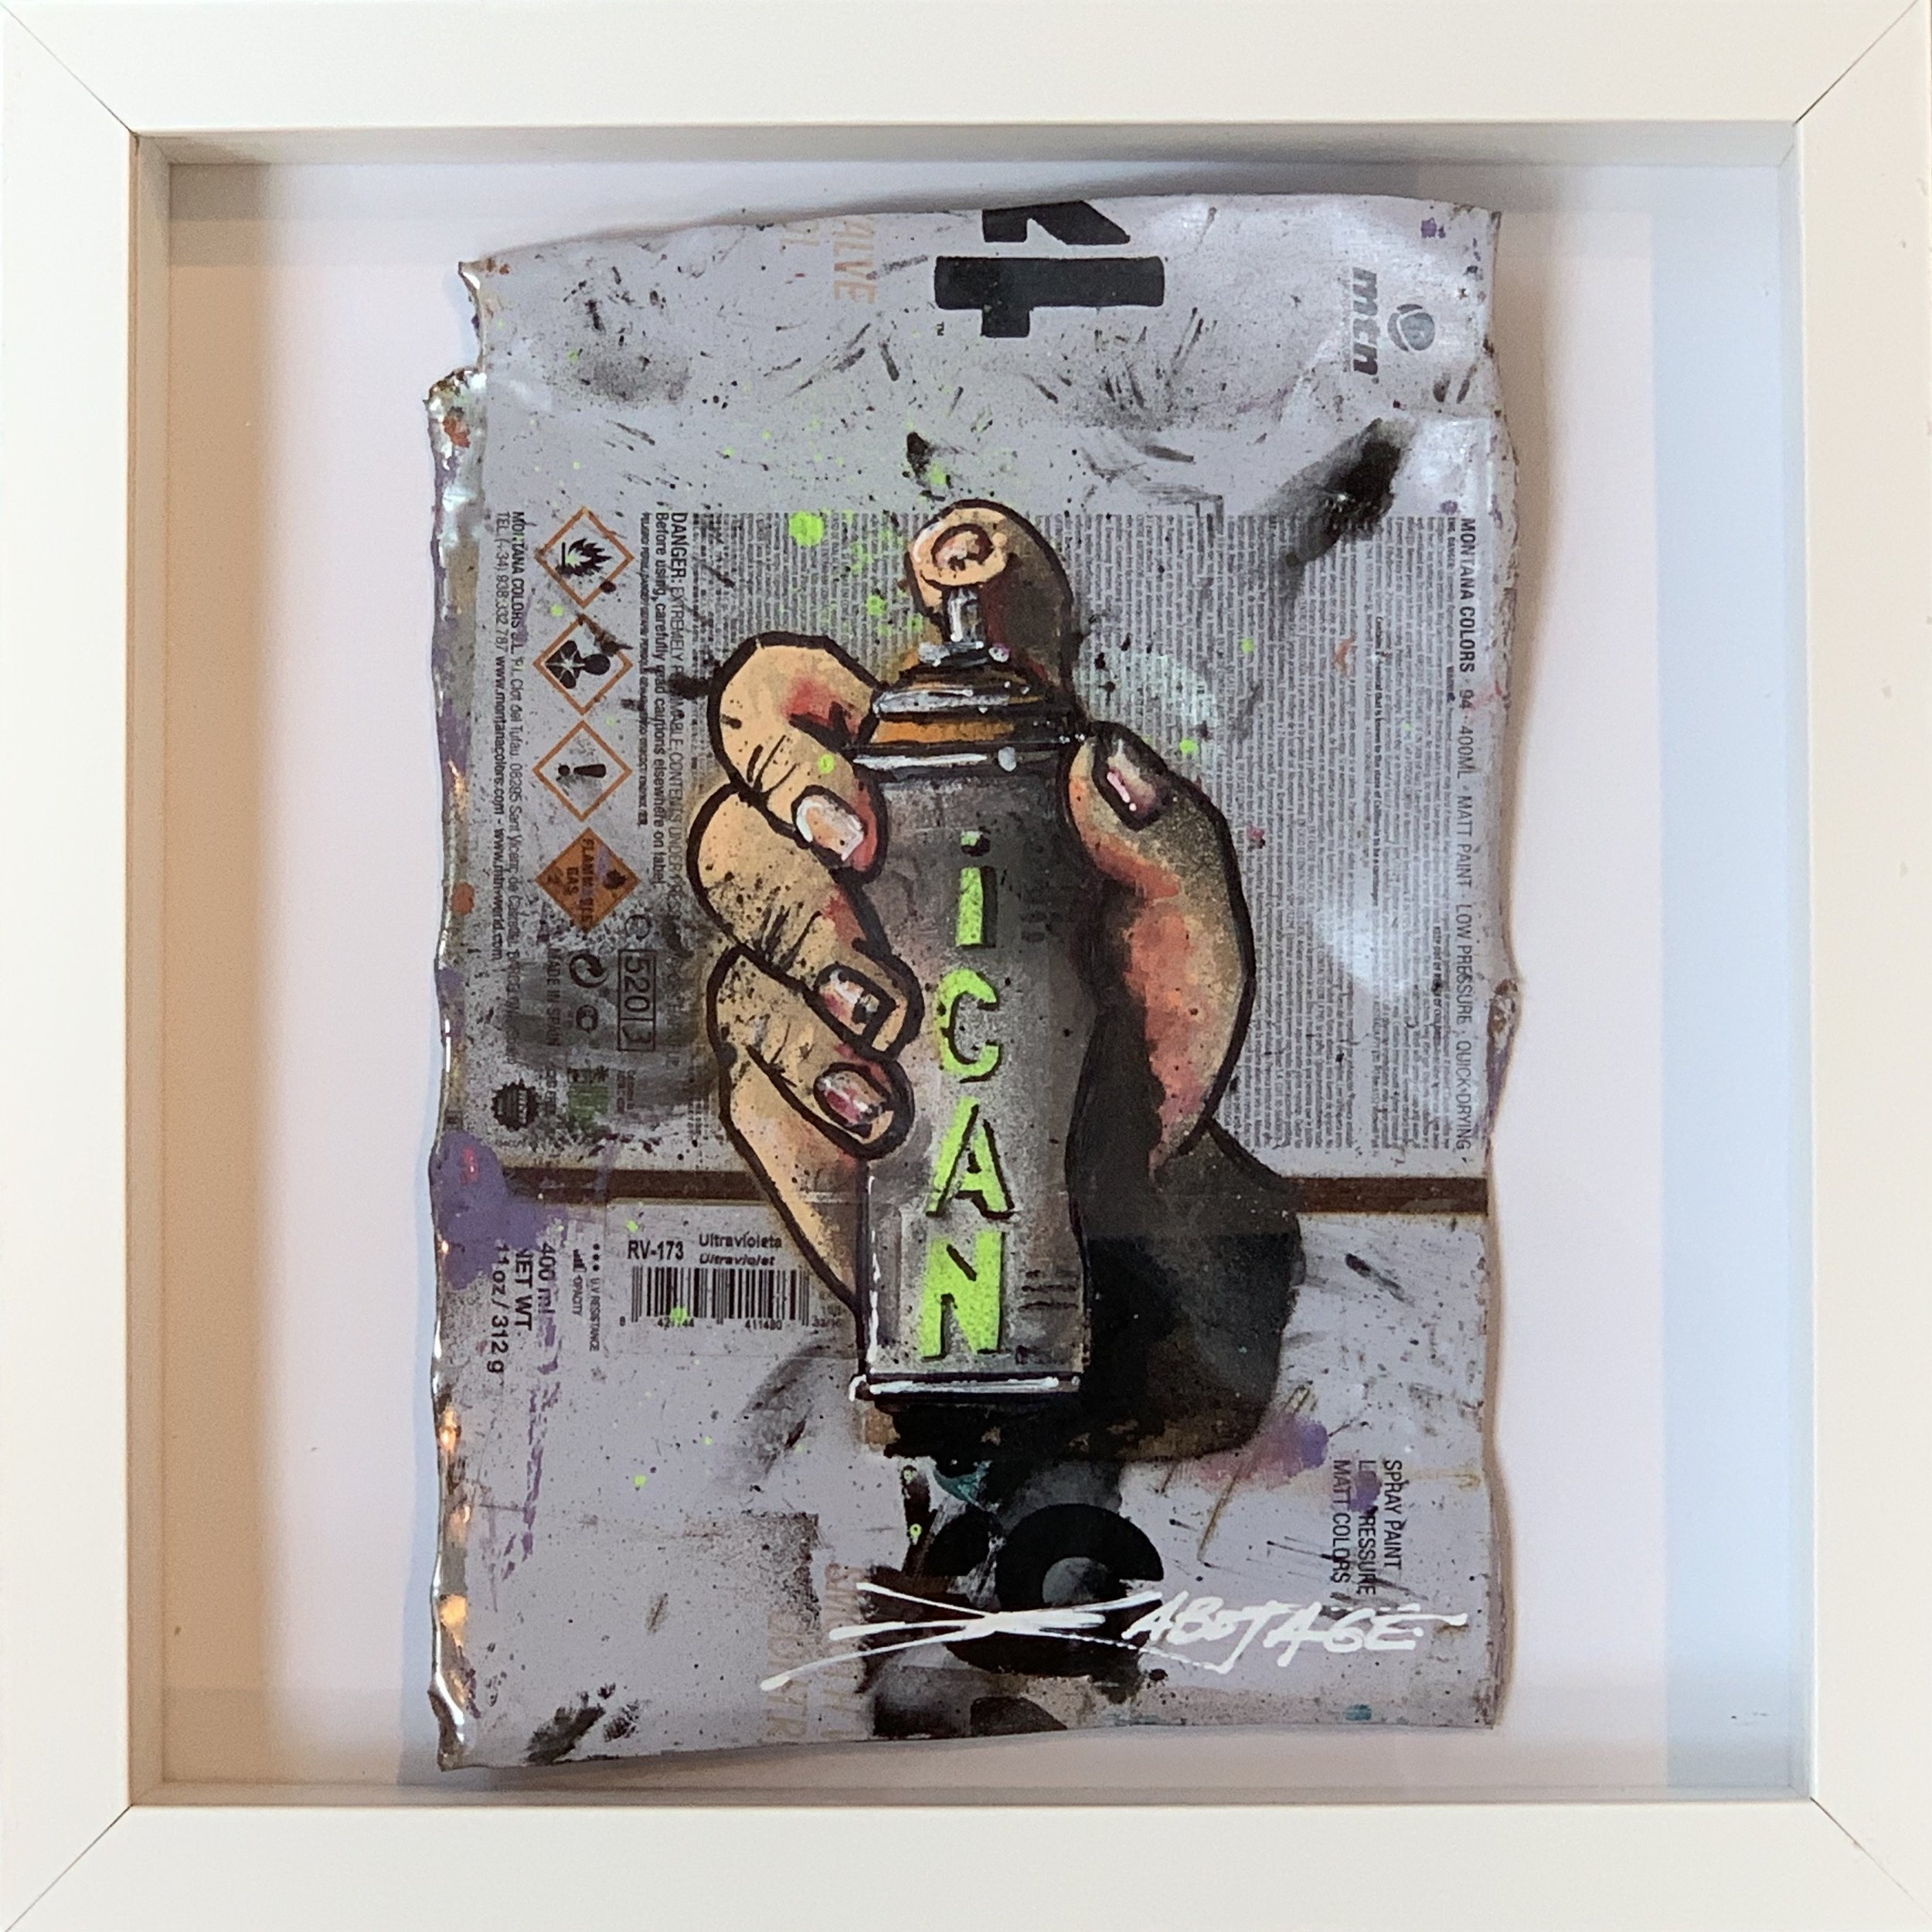 """Mini Can Can I CAN"" Stencil Mixed Media Spray Paint and Graffiti Markers on deconstructed Can Background Framed 26 x 26 cm 2018"